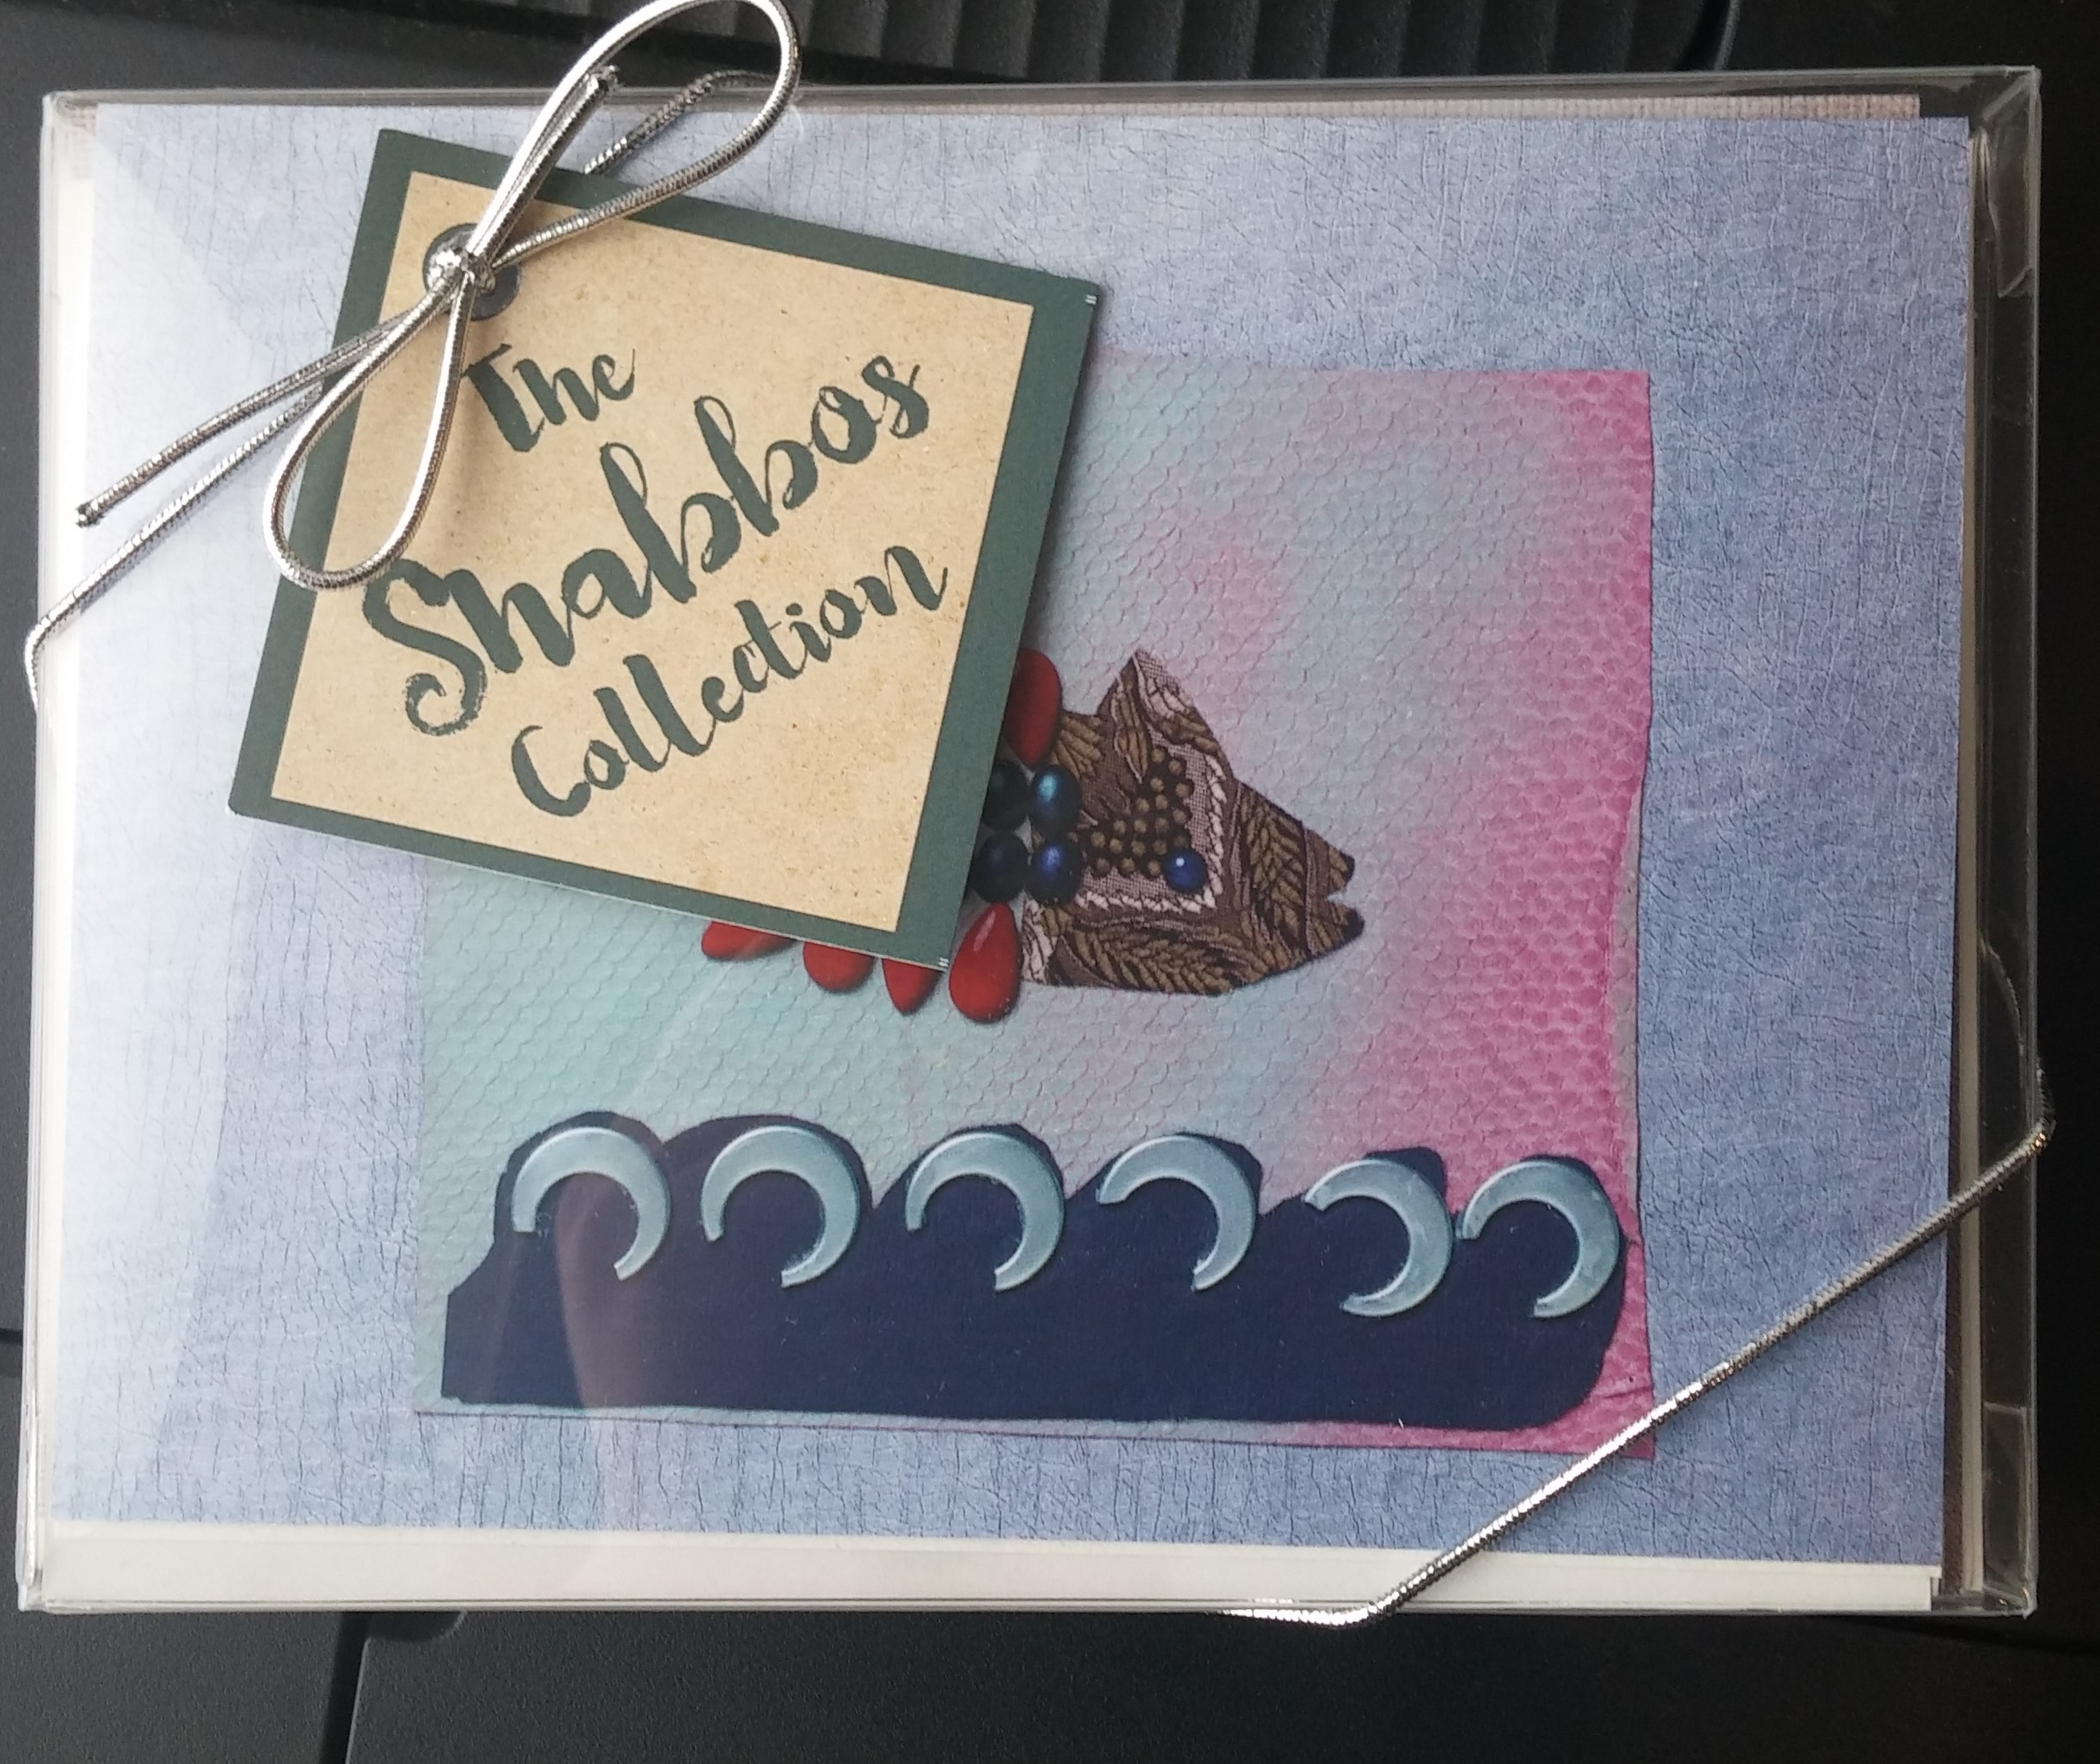 Art of friendship greeting cards the shabbos collection art of friendship greeting cards the shabbos collection friendship circle of brooklyn m4hsunfo